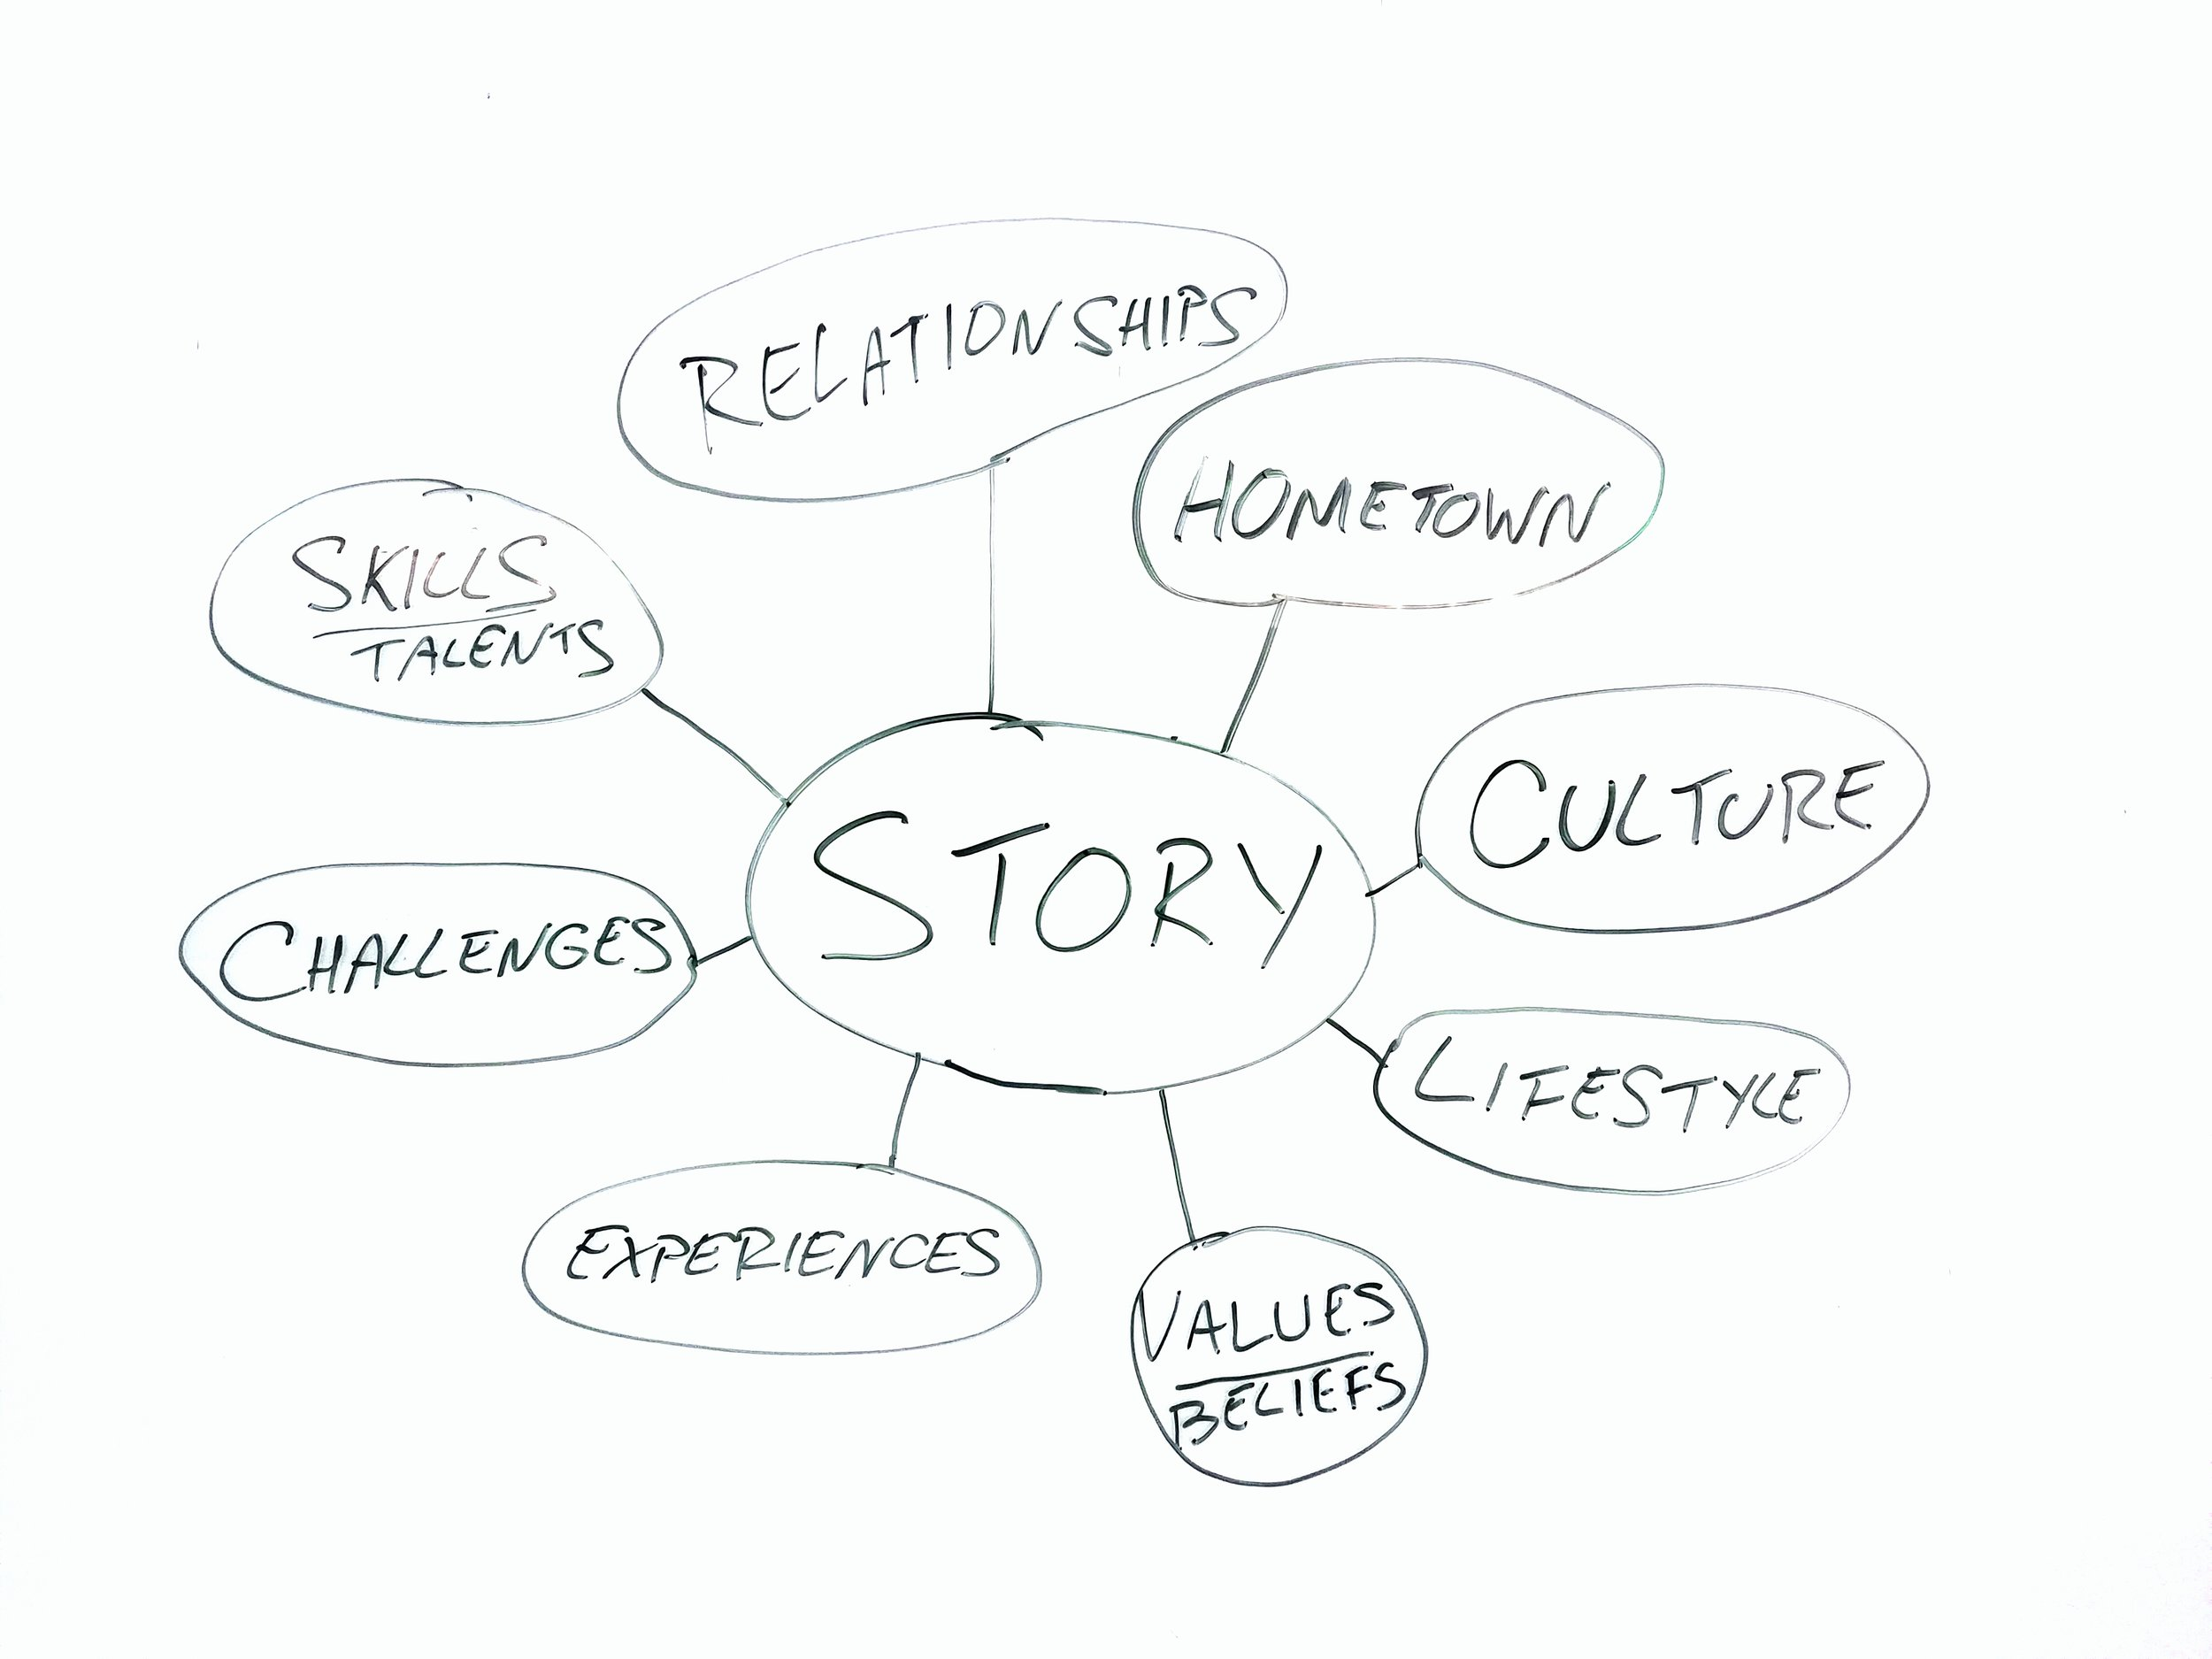 Elements that make up your story by Chris Goyzueta